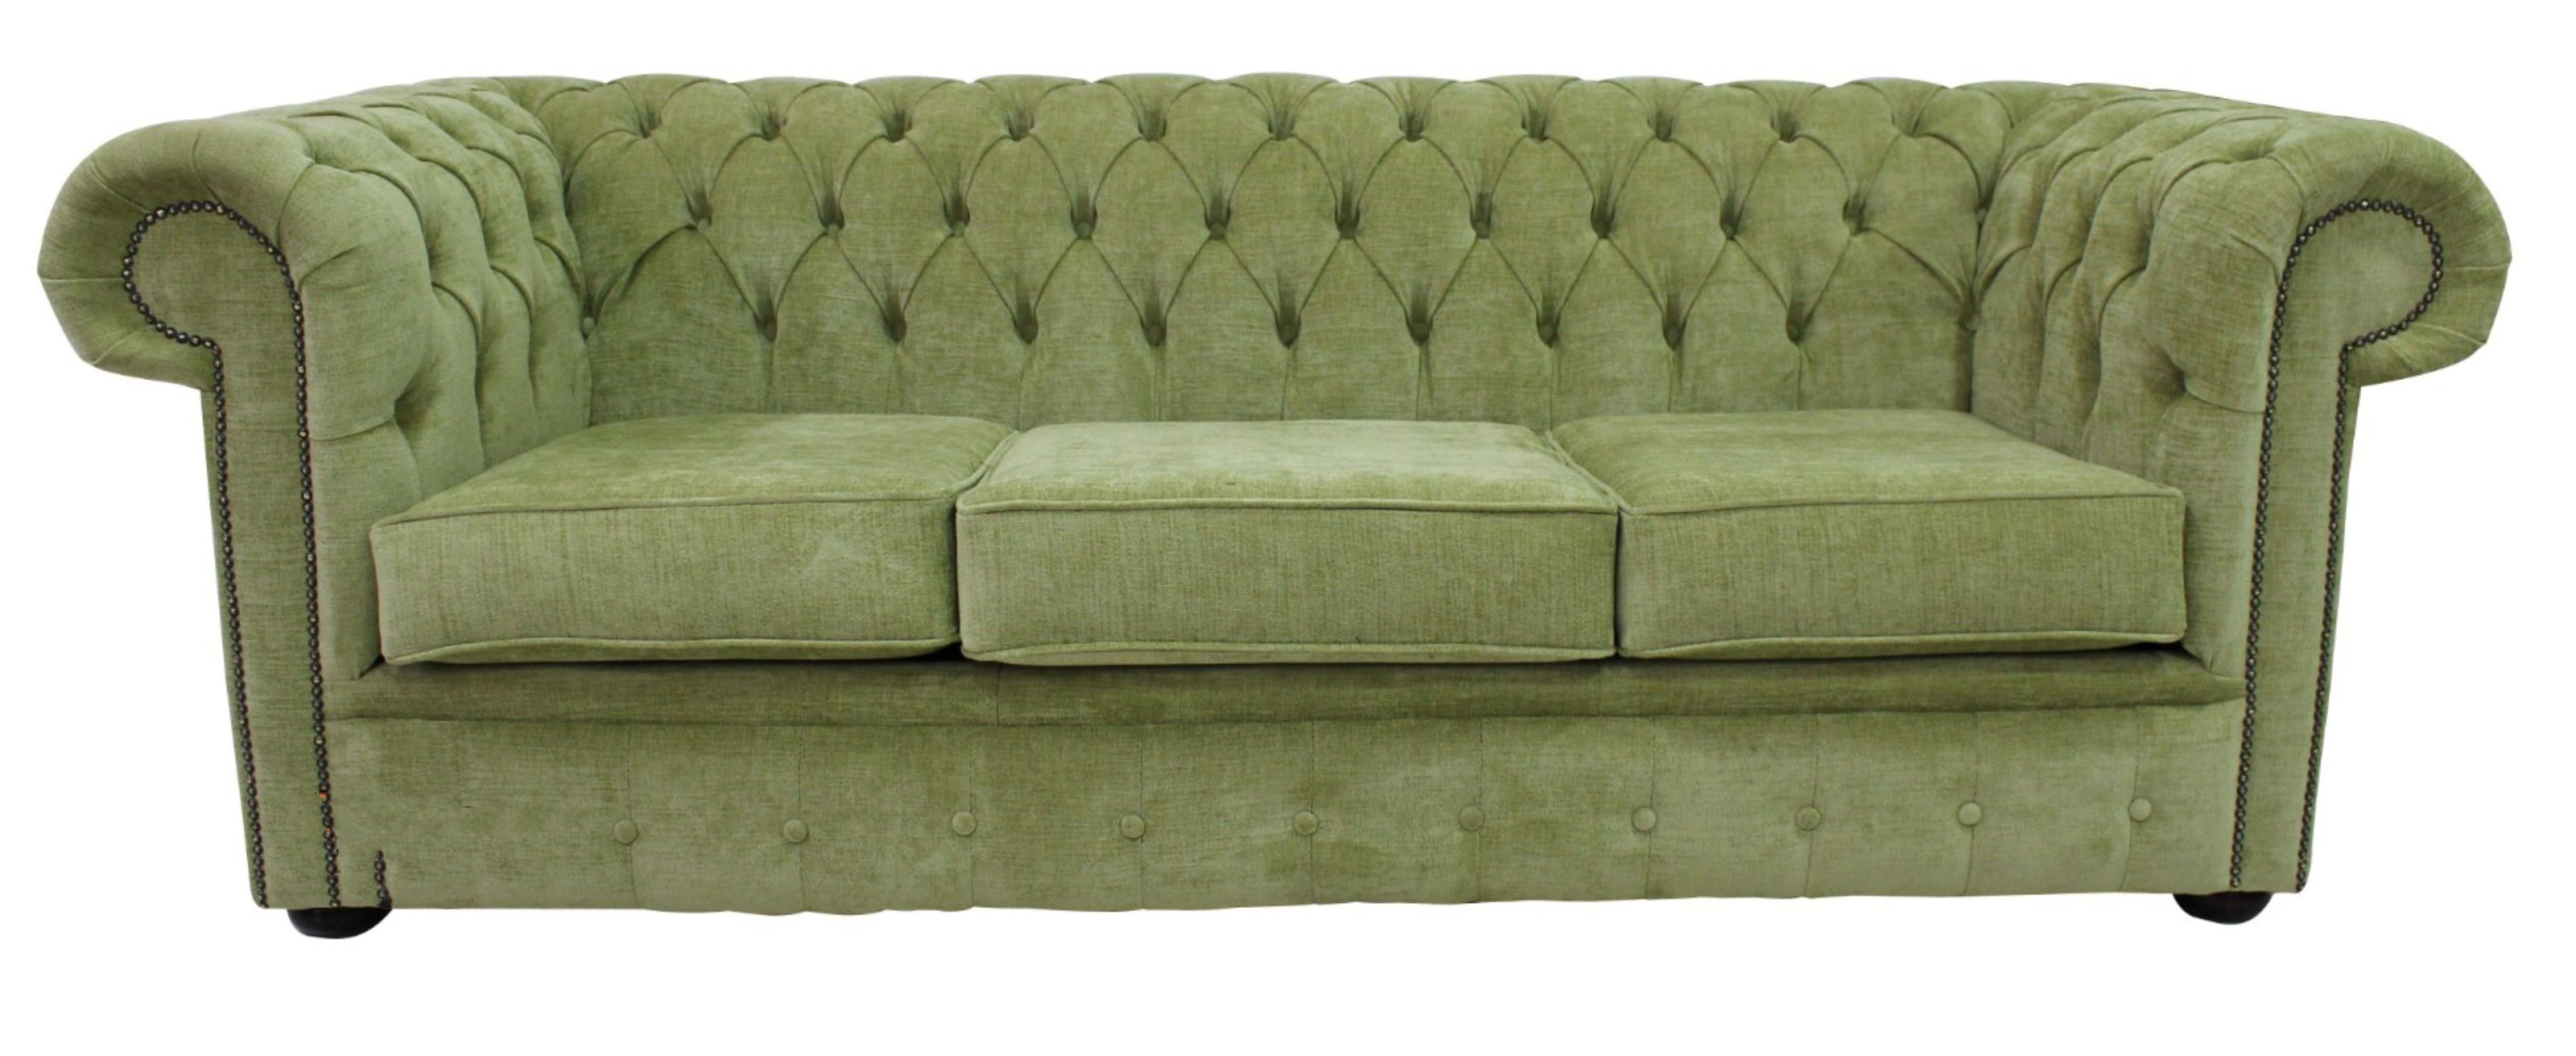 Astounding Chesterfield 3 Seater Settee Velluto Lime Green Fabric Sofa Offer Download Free Architecture Designs Scobabritishbridgeorg